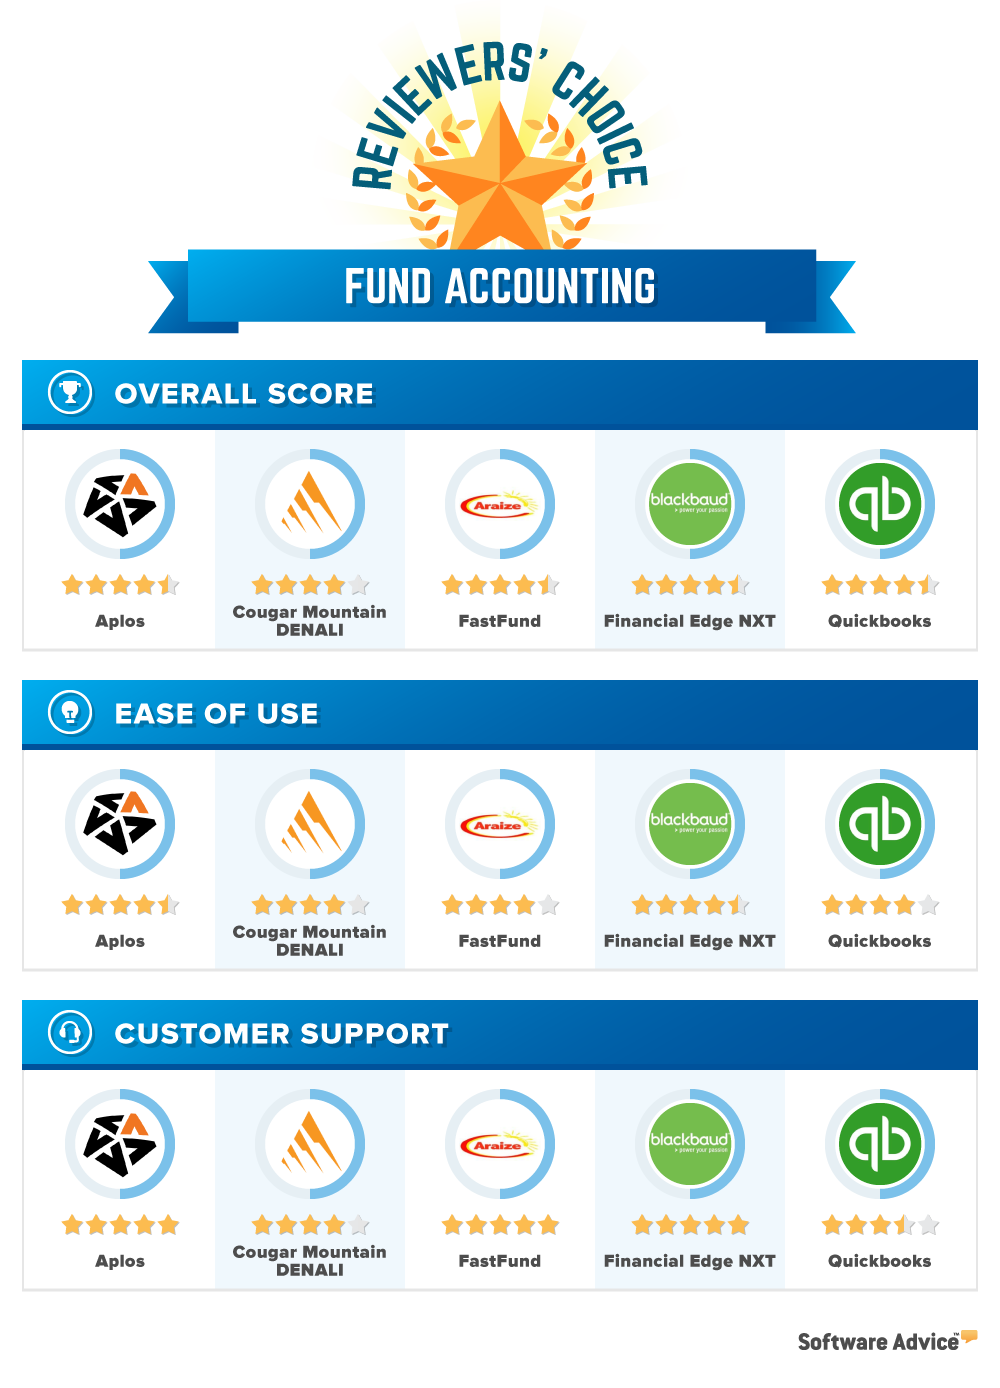 fund accounting reviewers choice